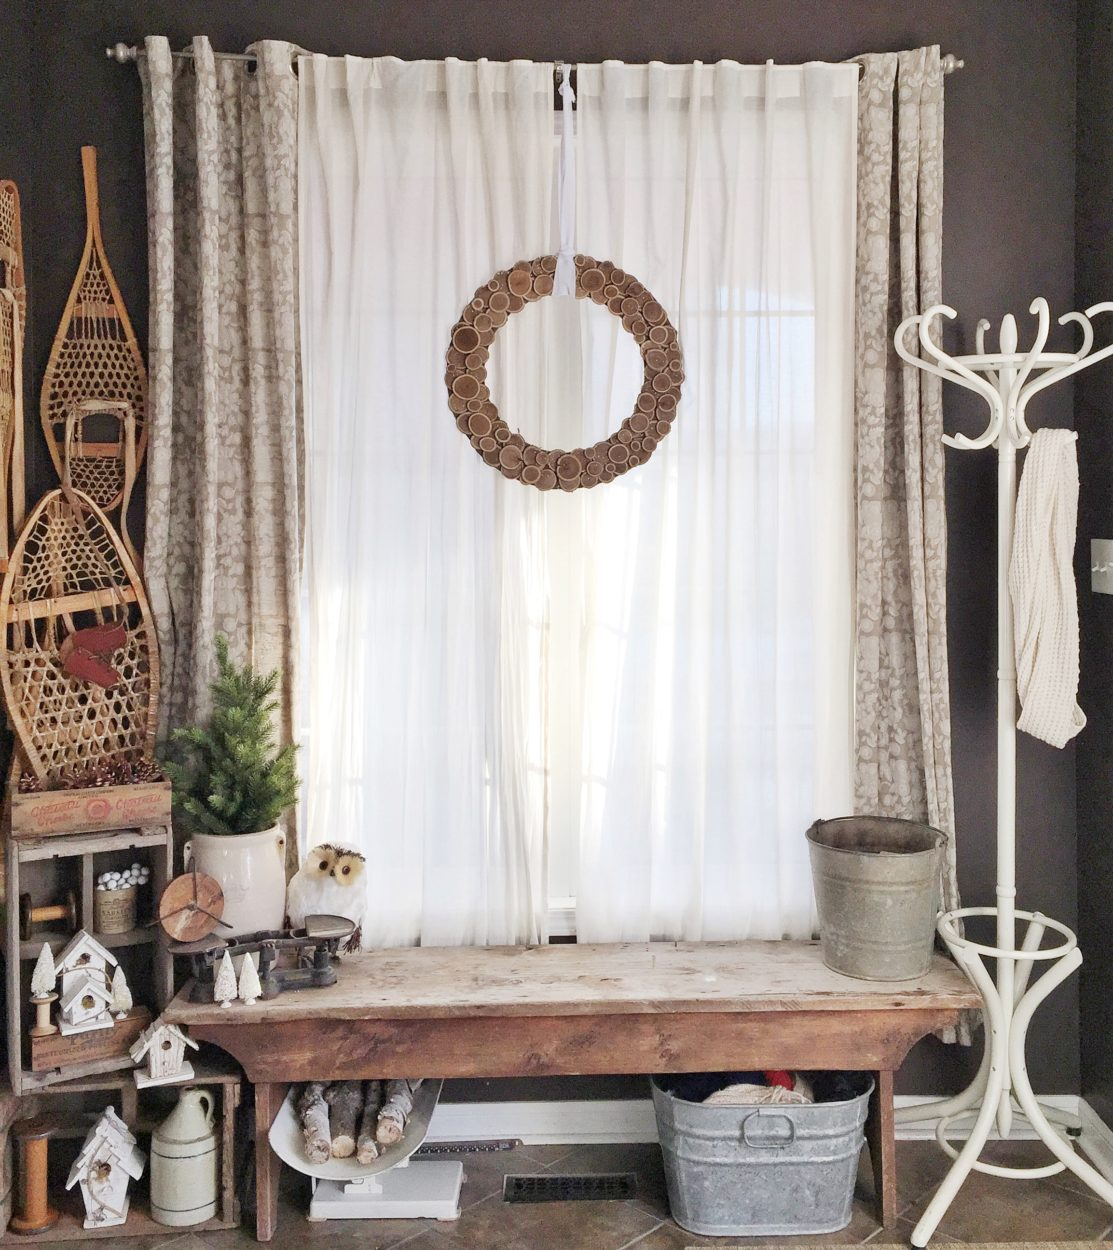 Decorating With Antiques: Decorating With Vintage Items